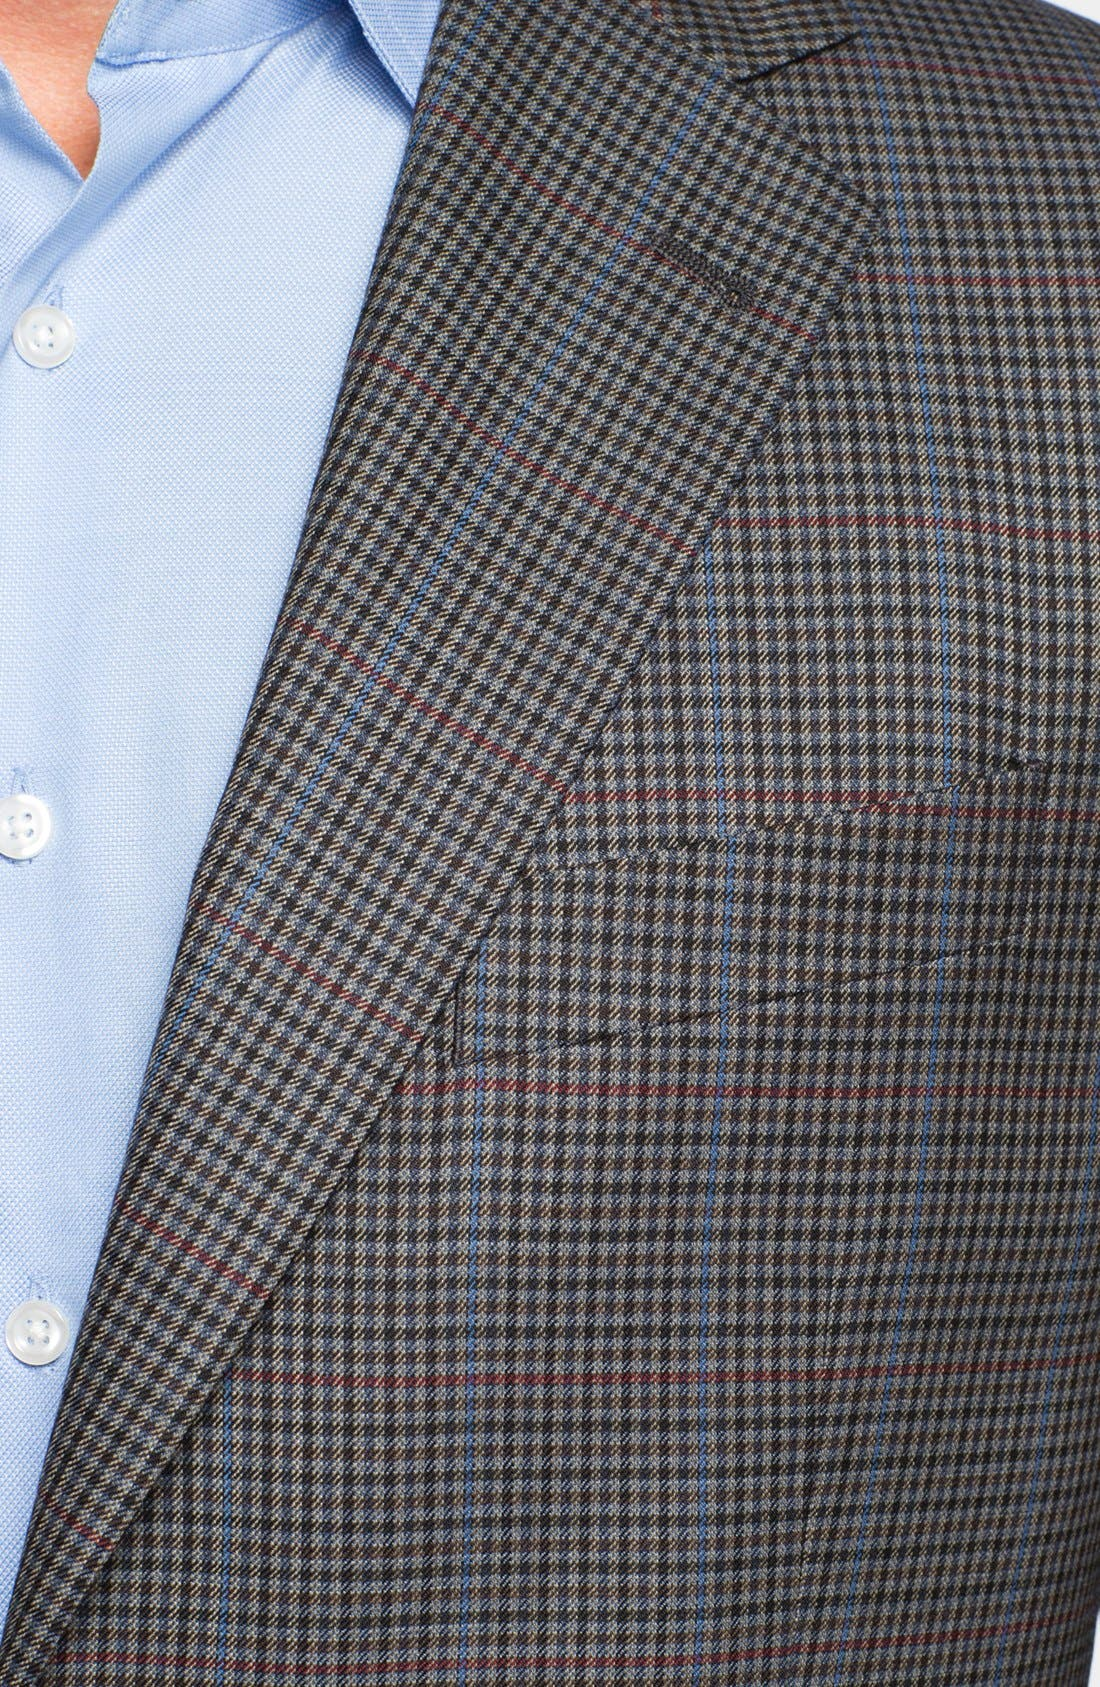 Alternate Image 2  - Joseph Abboud 'Signature Silver' Check Wool Sportcoat